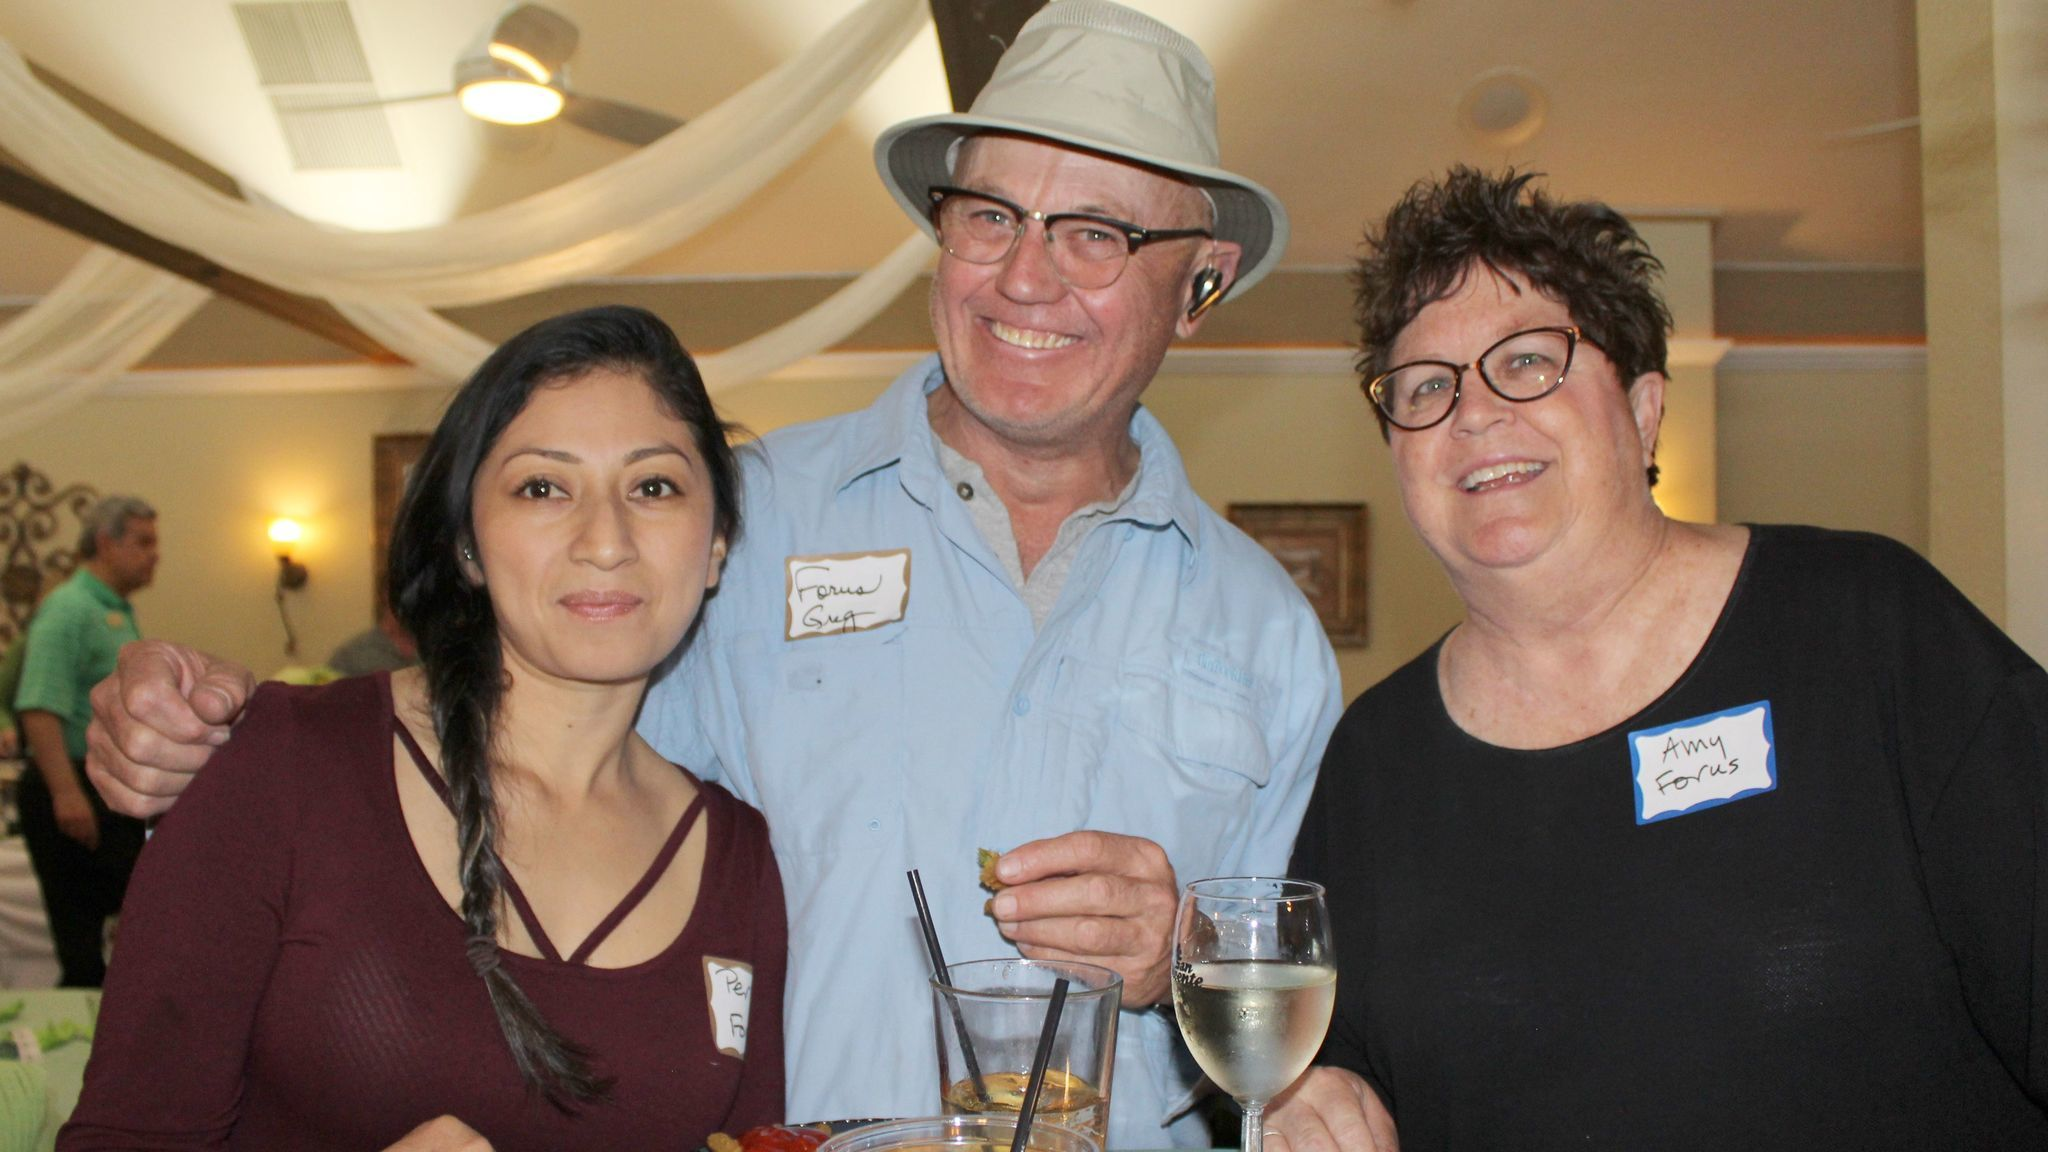 Friends of Ramona Unified Schools (FORUS) directors Perla Martinez, Greg Chick, and Amy Barraclough.